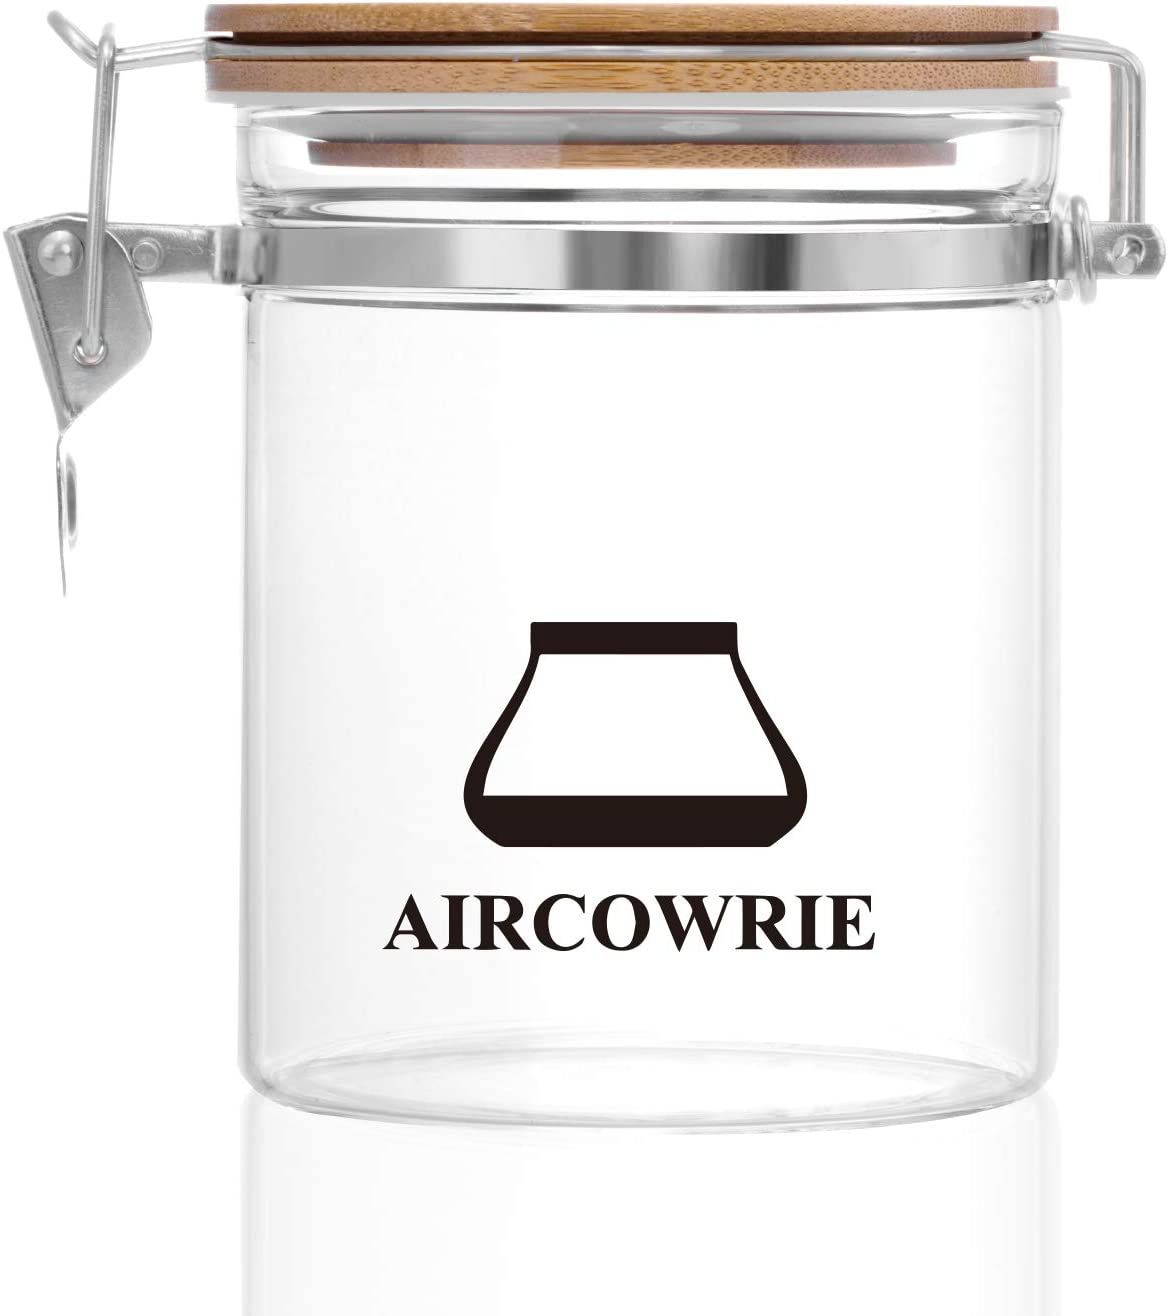 Food Storage Jar, AIRCOWRIE 20.3FL OZ(600ML) High Borosilicate Glass Jars with Airtight Bamboo Lids Locking Clamp, Clear Glass Storage Canister for Coffee Tea Sugar Cookie Spices and More